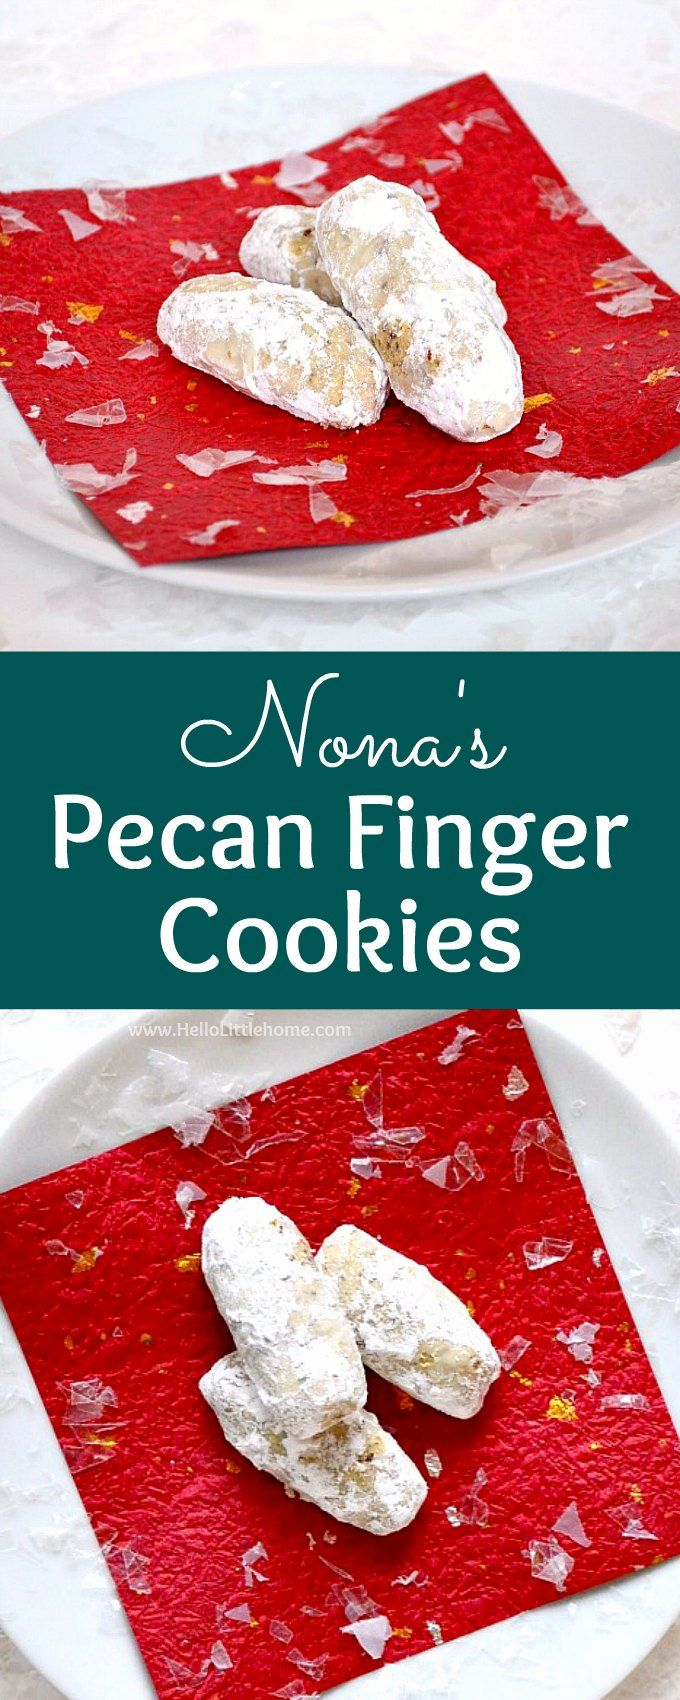 Nona's Pecan Finger Cookies ... learn how to make this traditional pecan fingers cookie recipes that's been handed down for generations! These classic Pecan Cookies feature a buttery, pecan filled dough that gets rolled in powdered sugar after it's baked. Sometimes called Pecan Crescent Cookies, Lady Fingers, or even Nutty Fingers, these Christmas cookies are a hit every holiday season. | Hello Little Home #christmascookies #christmasrecipes #CookieRecipe #pecancookies #cookies…